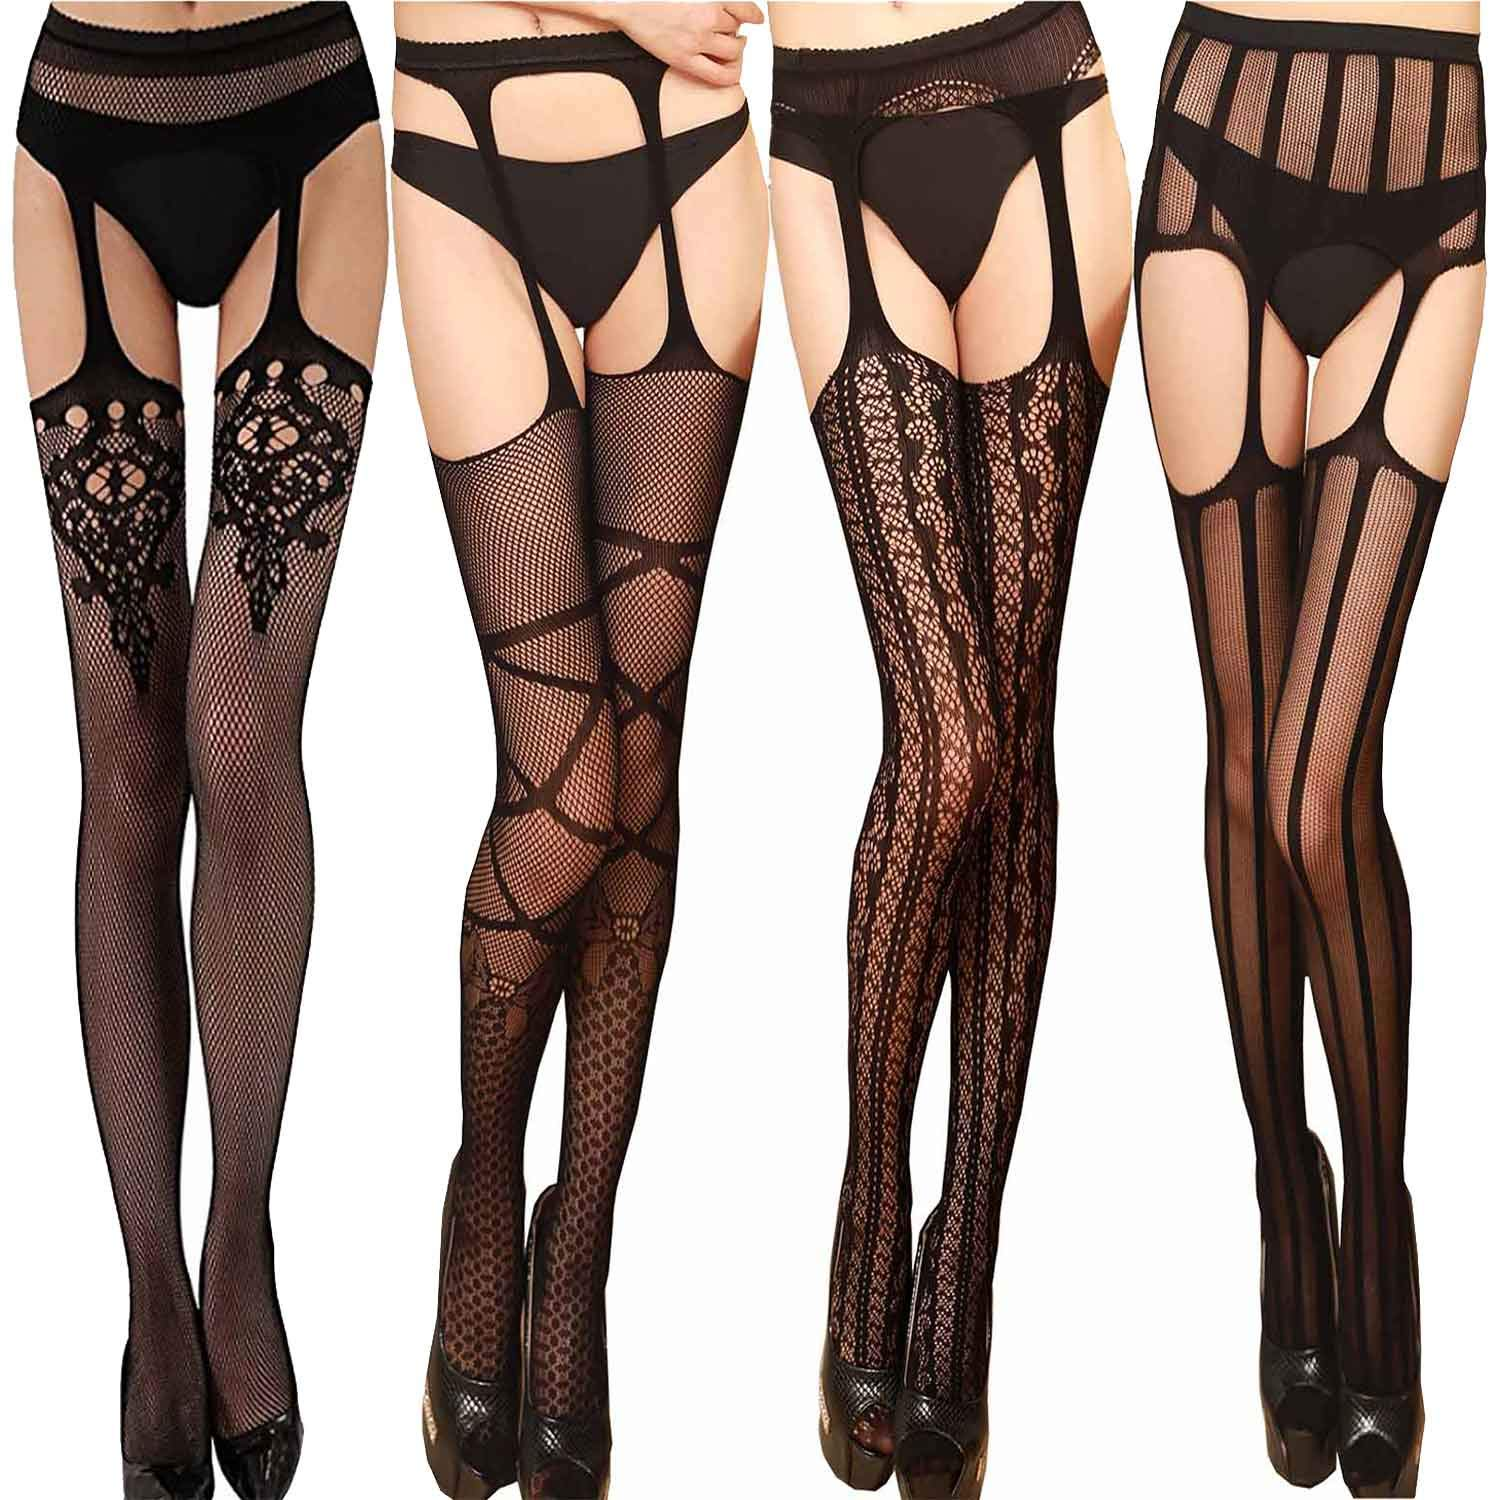 Vivilover Women's Suspender Pantyhose Fishnet Stocking with Designs (Height: 5'5'' - 5'11'' / Weight: 100-180lbs, Style A 5pairs)